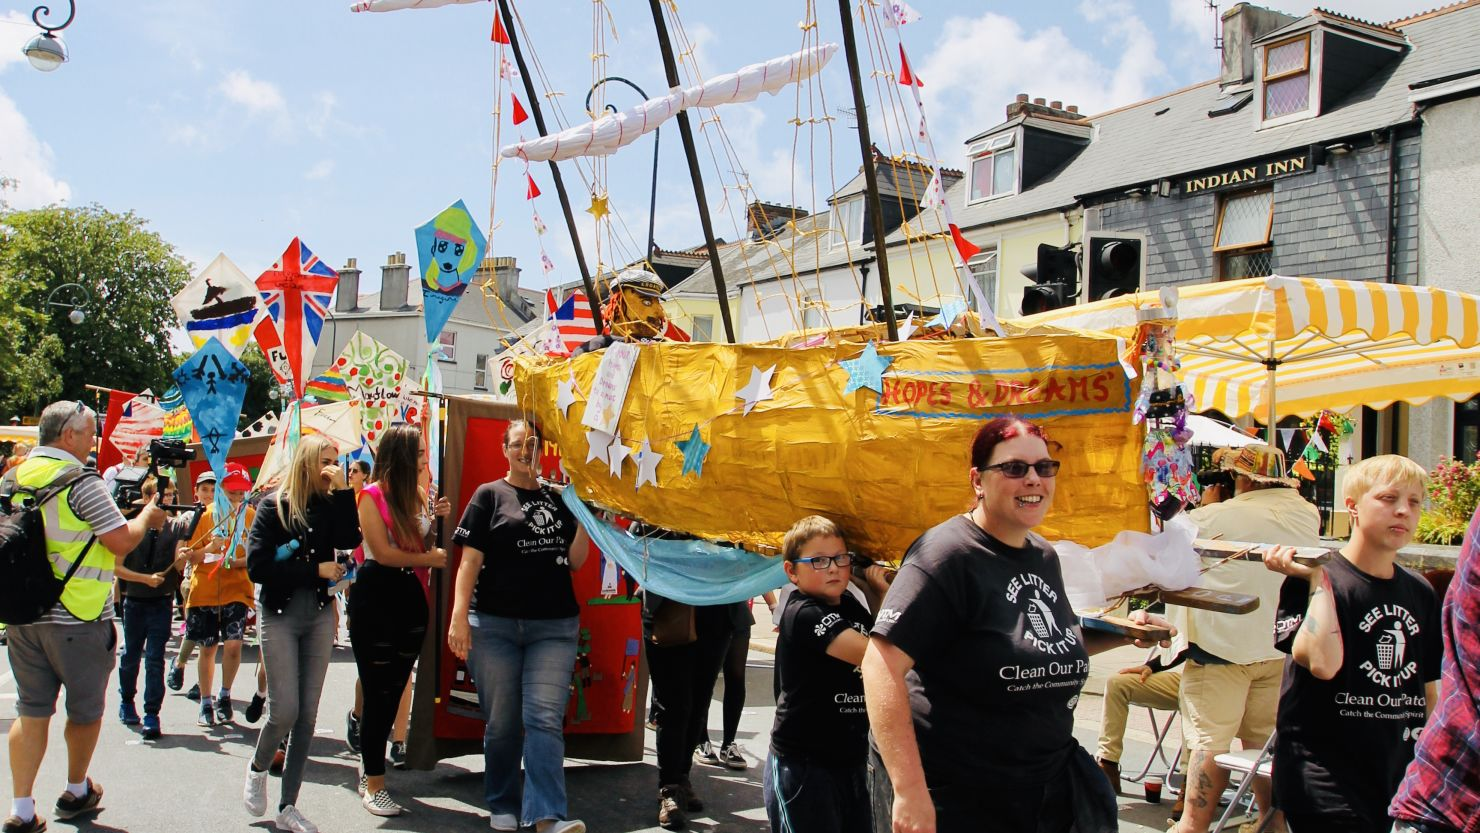 A group of people taking part in a community parade and carrying a boat made from card